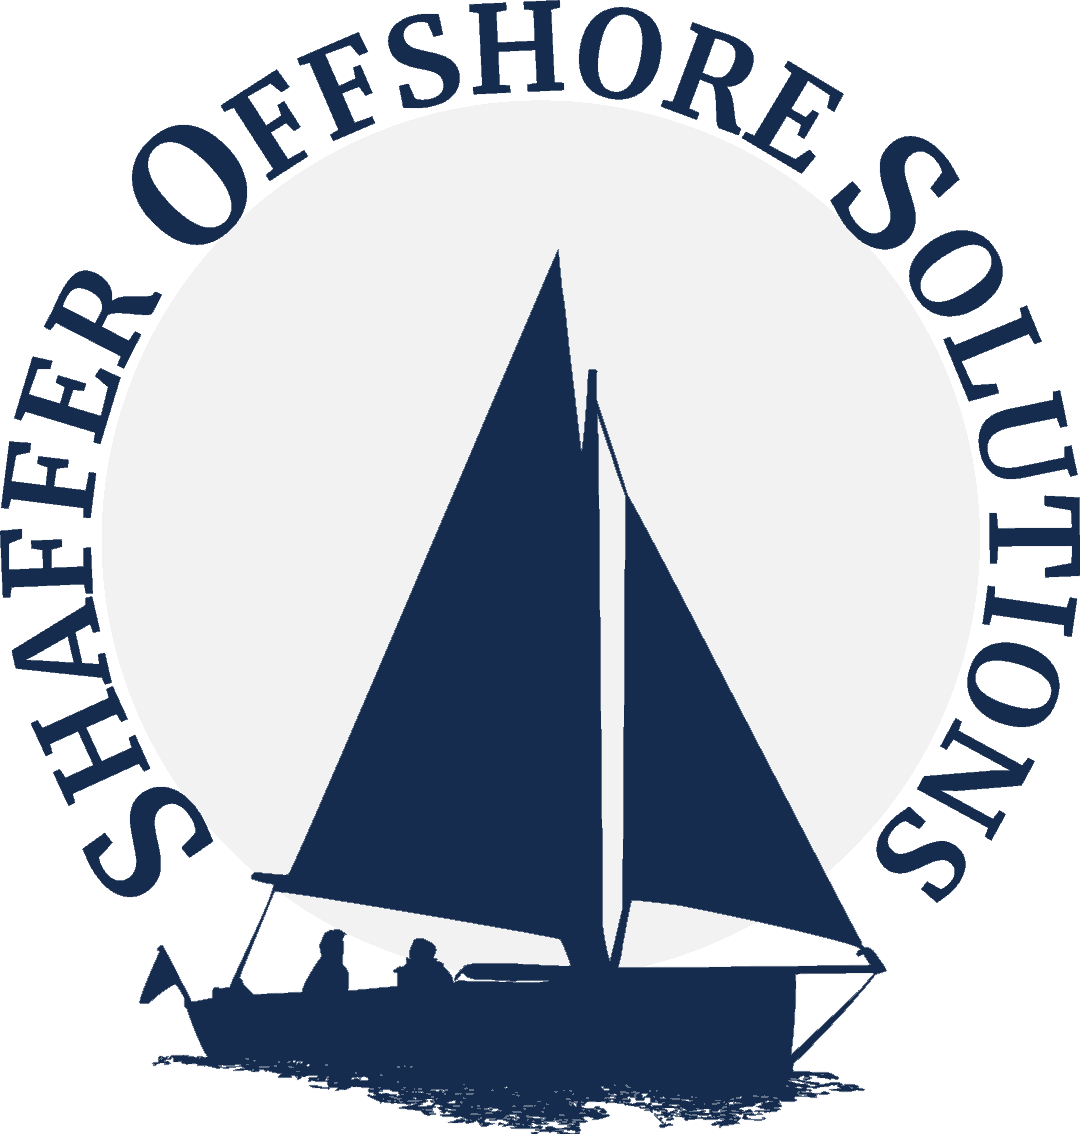 Shaffer Offshore Solutions